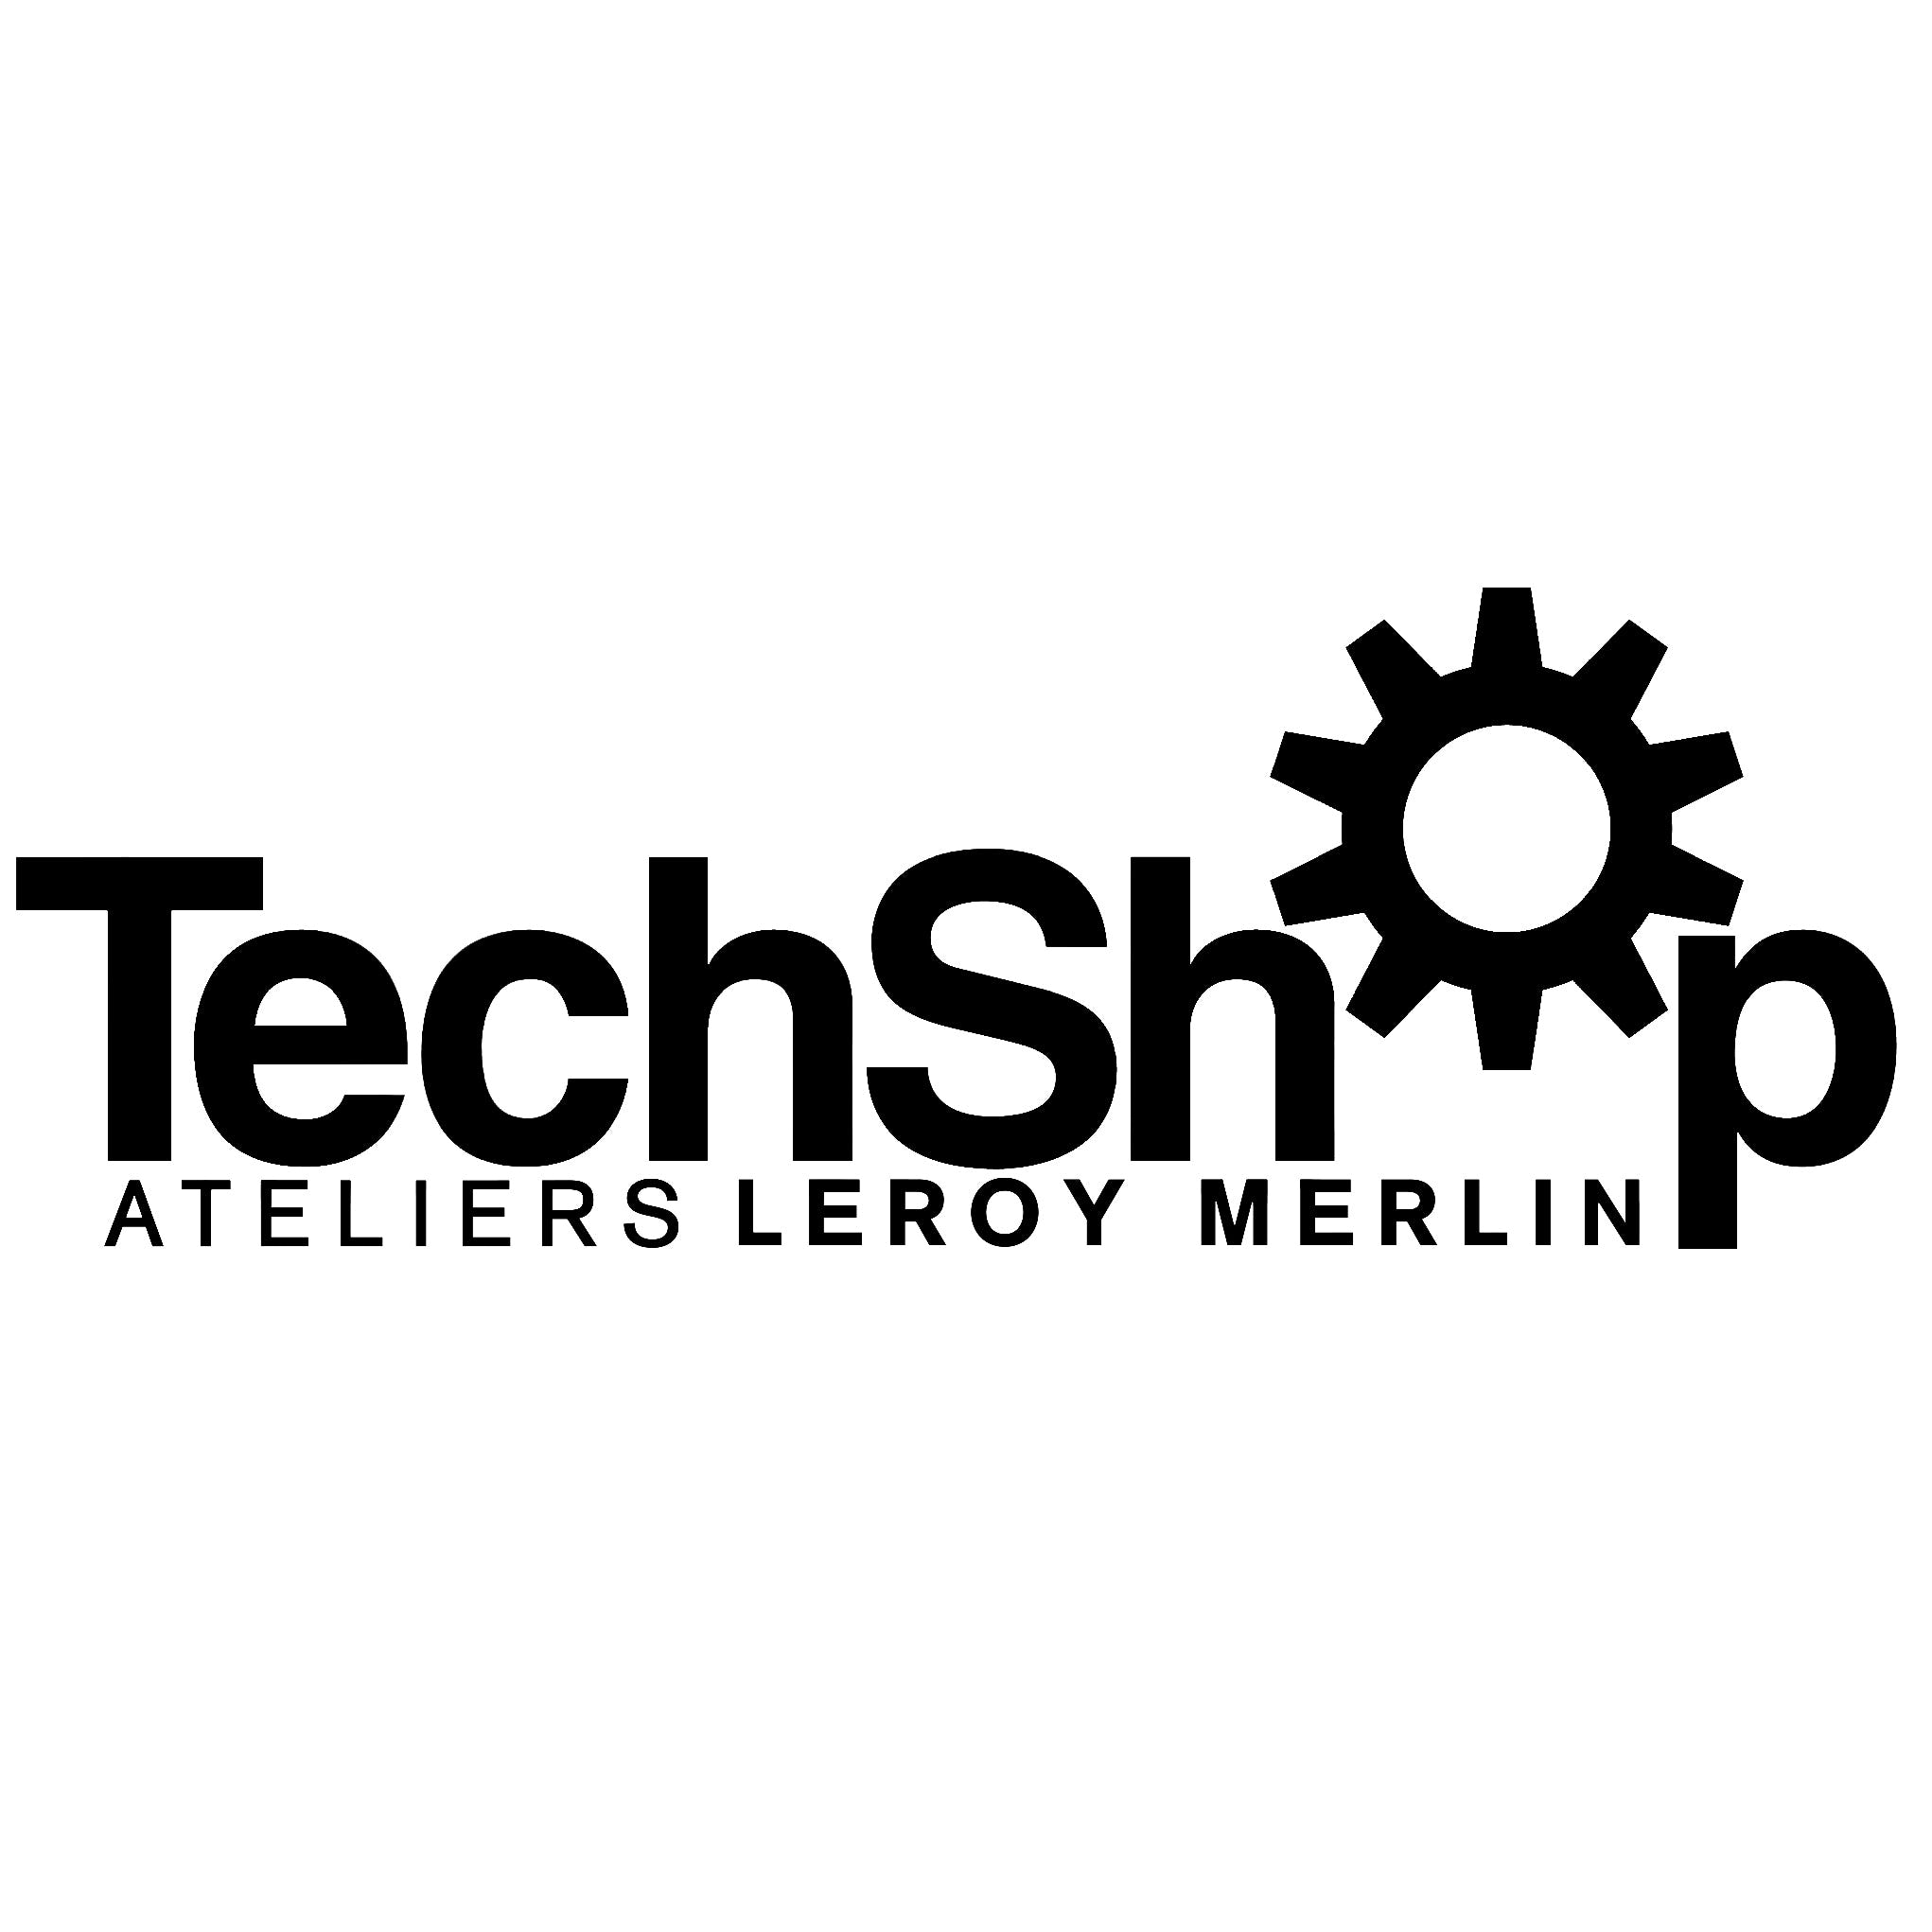 Techshop Ateliers Leroy Merlin